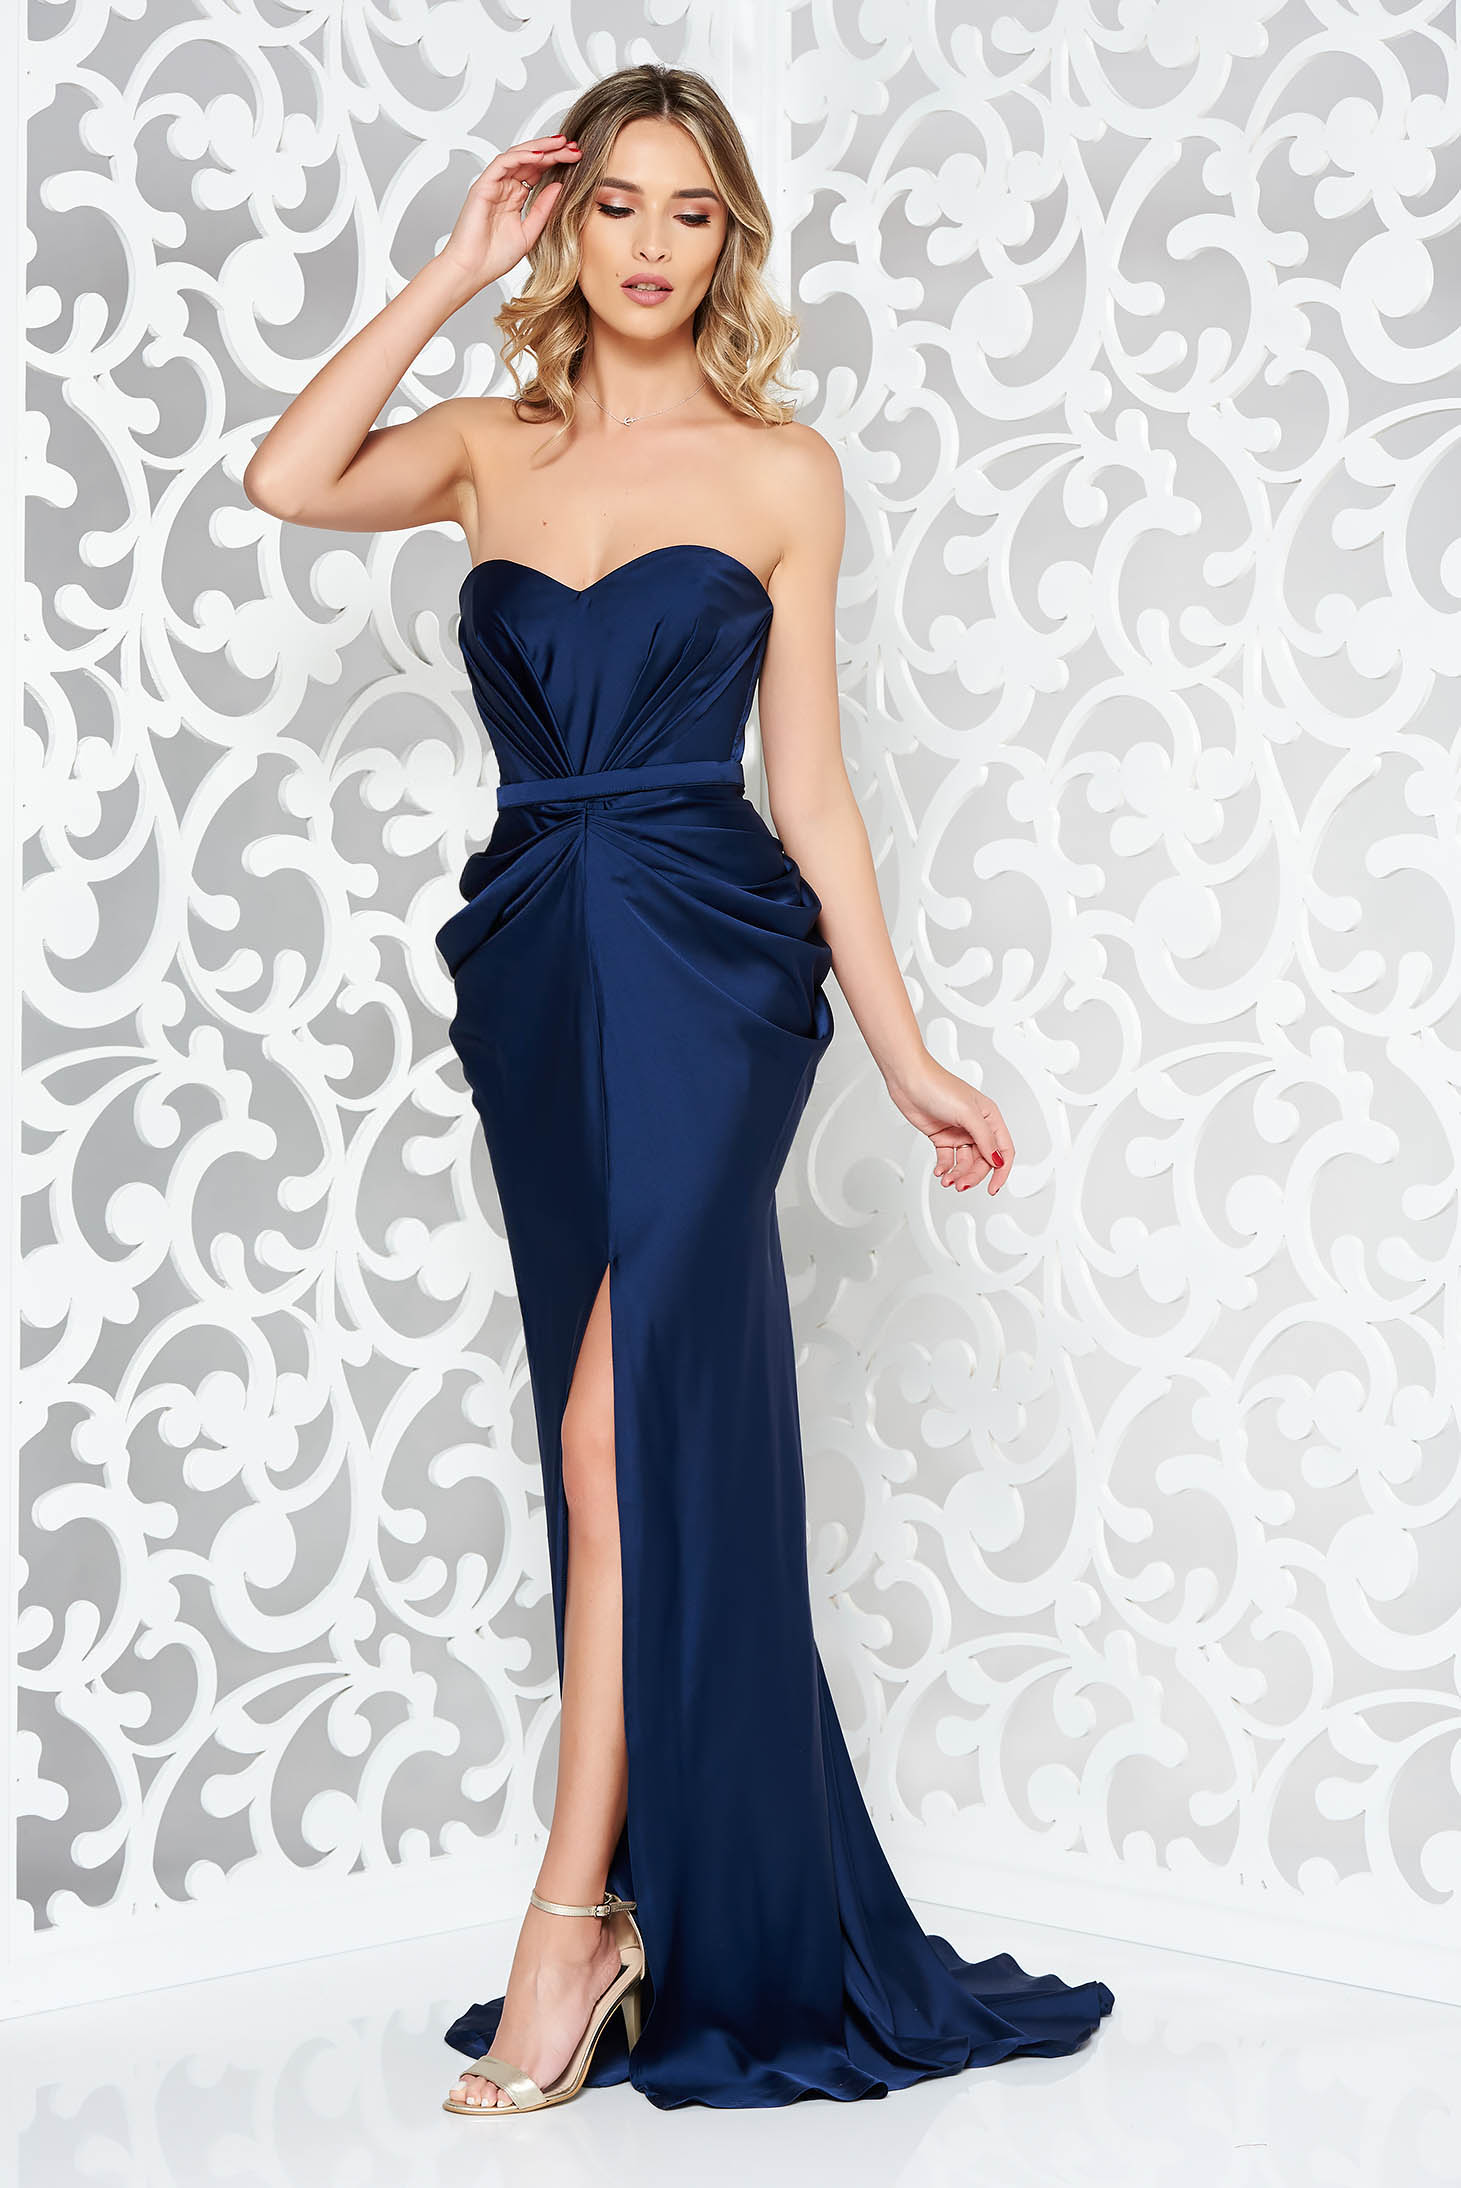 Ana Radu luxurious off shoulder dress from satin fabric texture with push-up bra accessorized with tied waistband darkblue